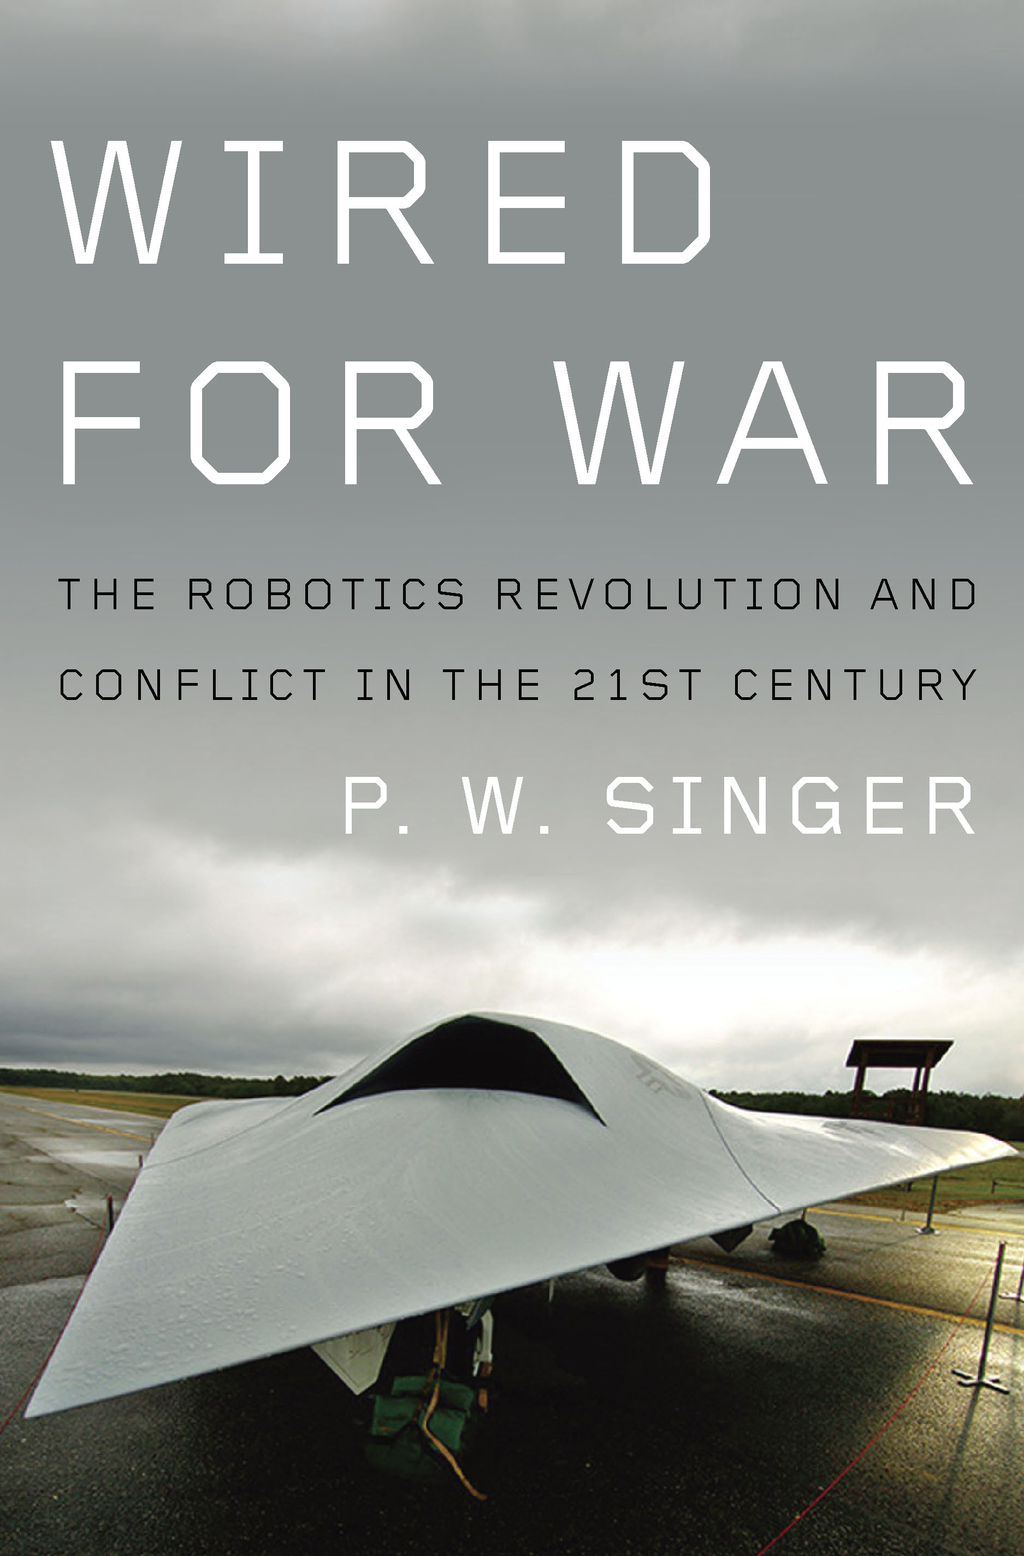 Wired for War: The Robotics Revolution and Conflict in the 21st Century By: P. W. Singer